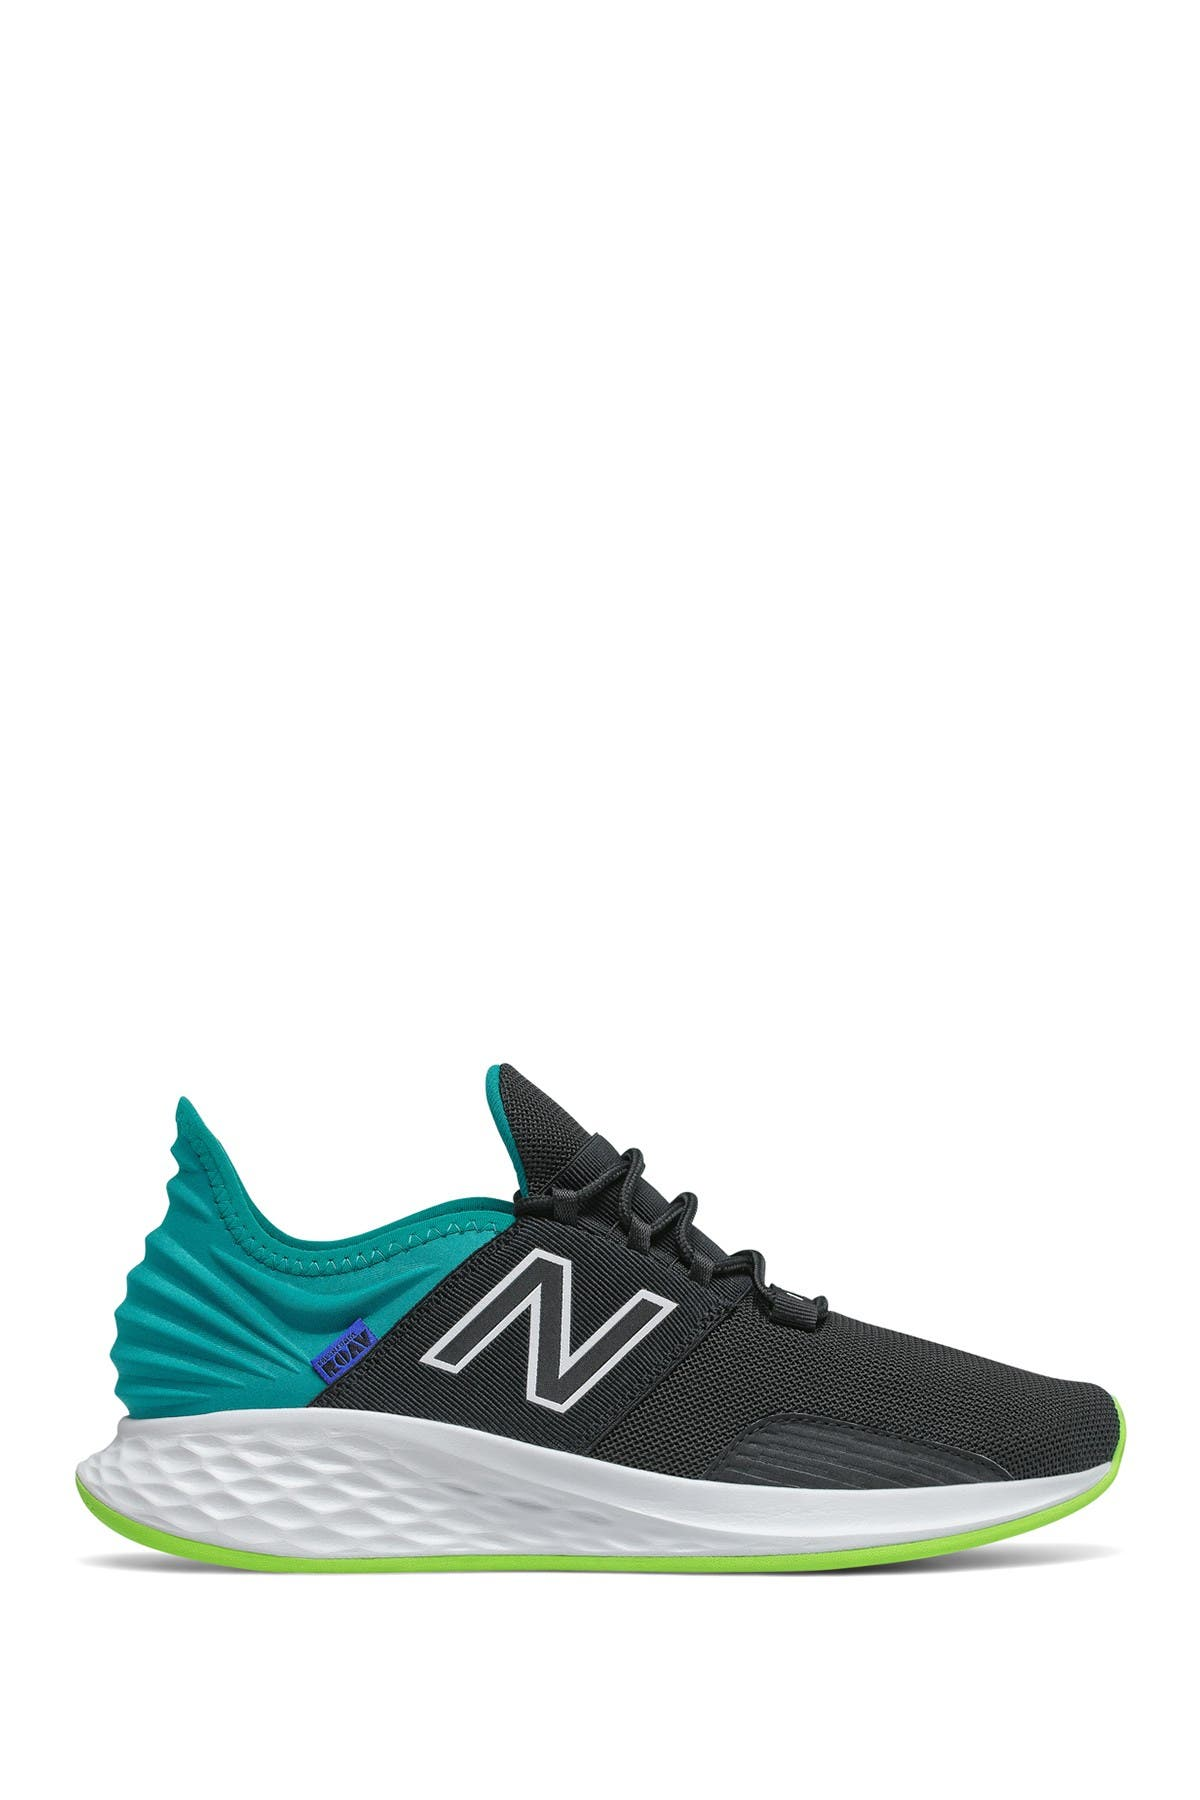 Image of New Balance Fresh Foam Roav Running Sneaker - Multiple Widths Available